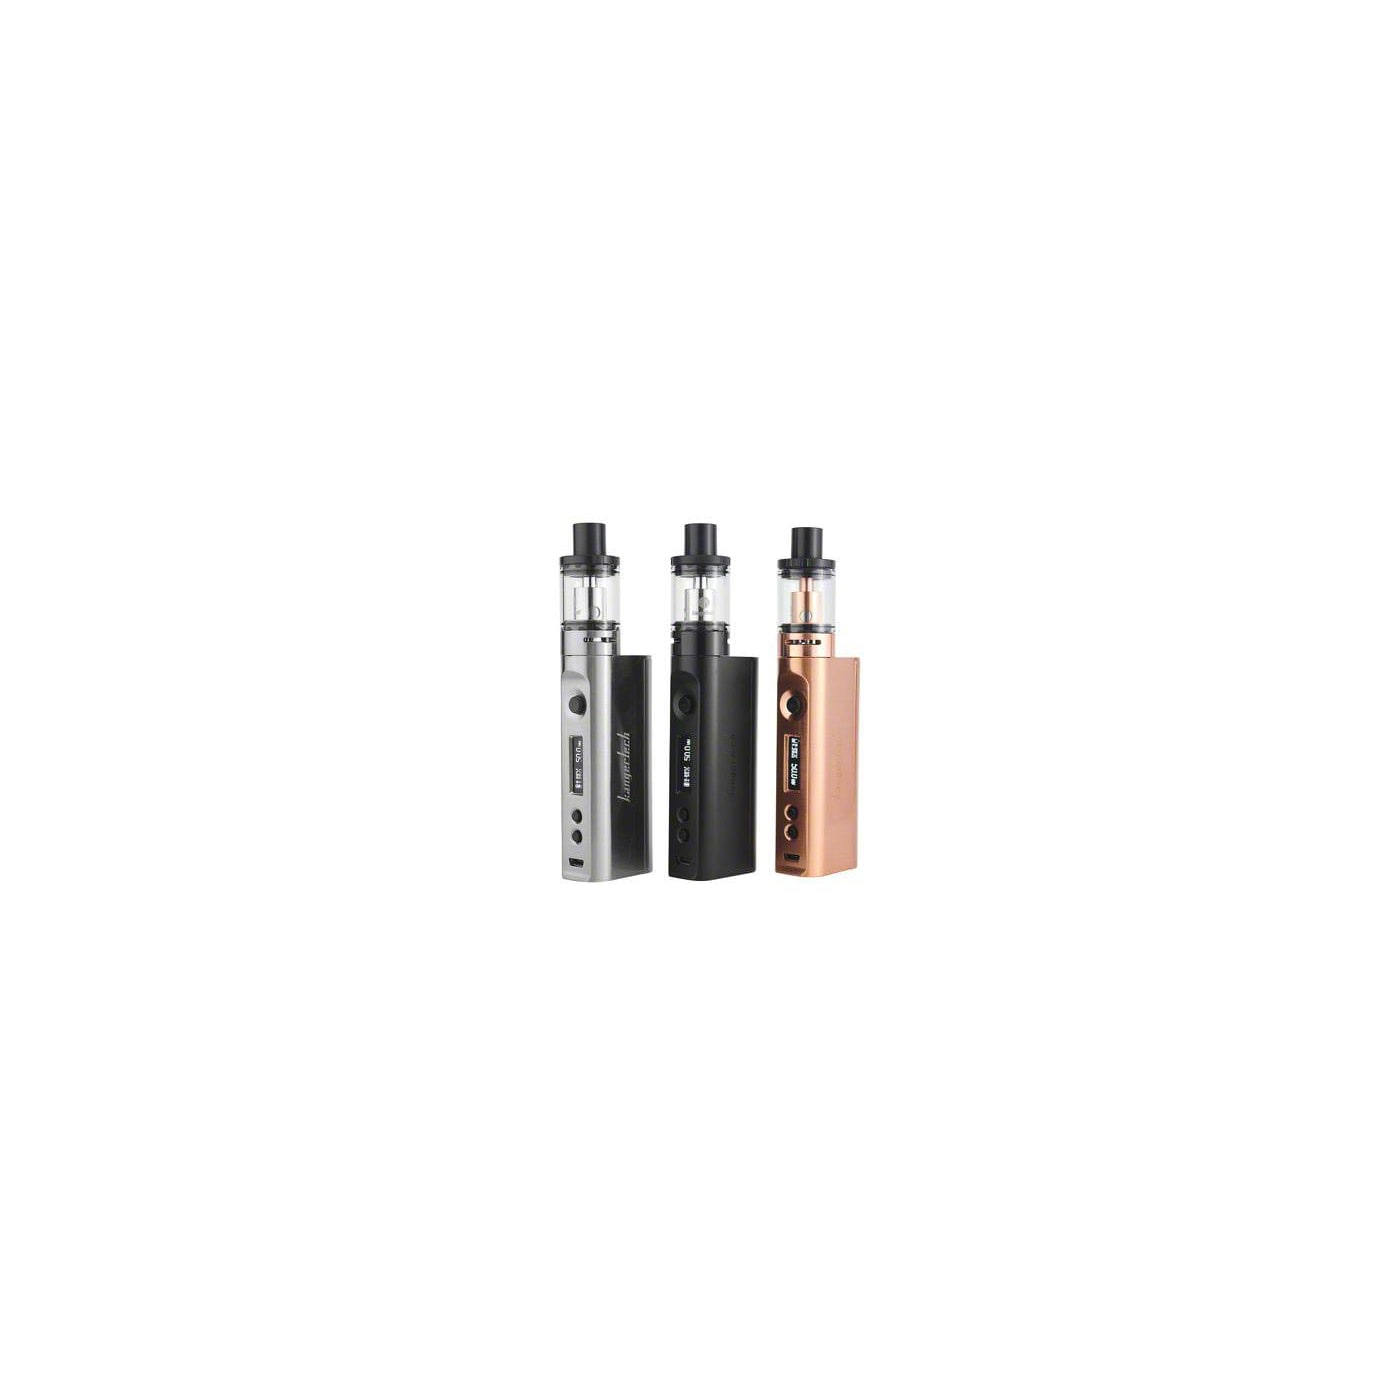 Bulk Kanger Subox Mini C 50W Starter Kit Colors